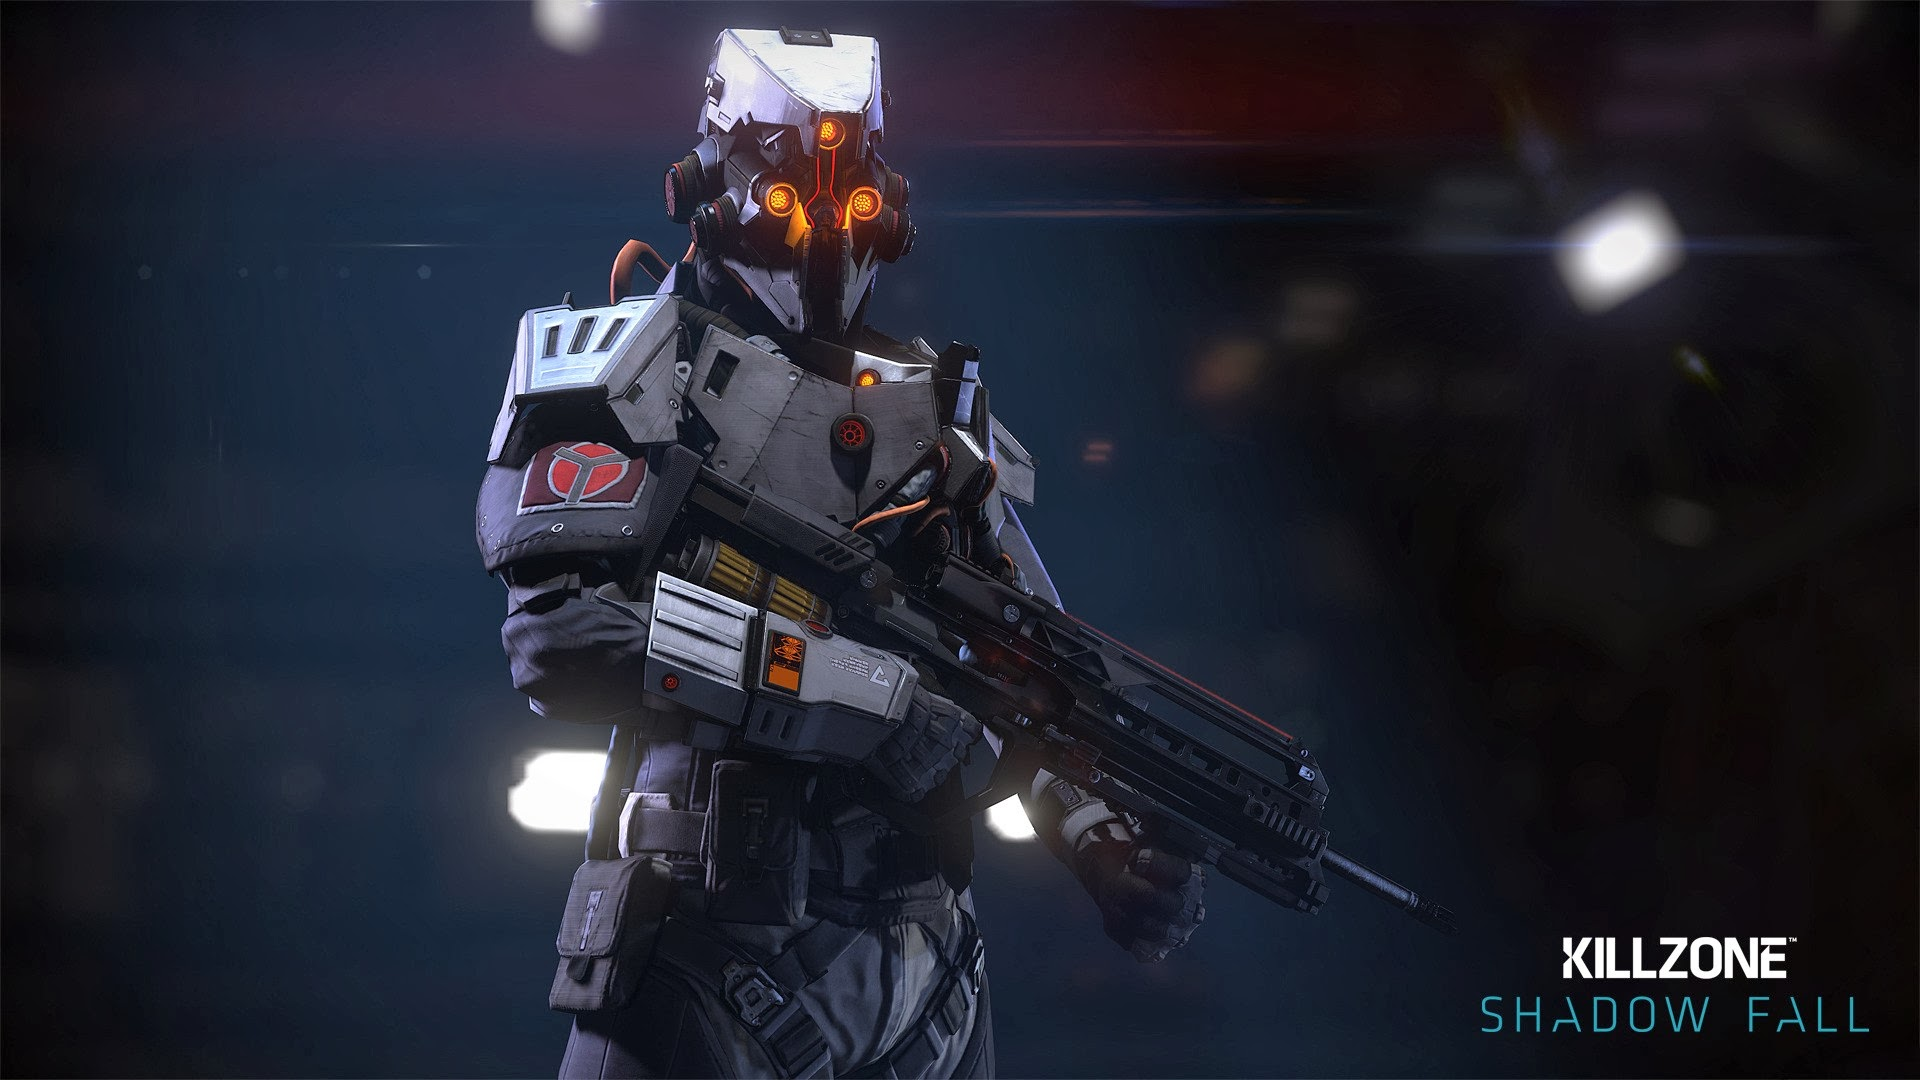 killzone shadow fall wallpapers - Free Killzone Shadow Fall Wallpapers